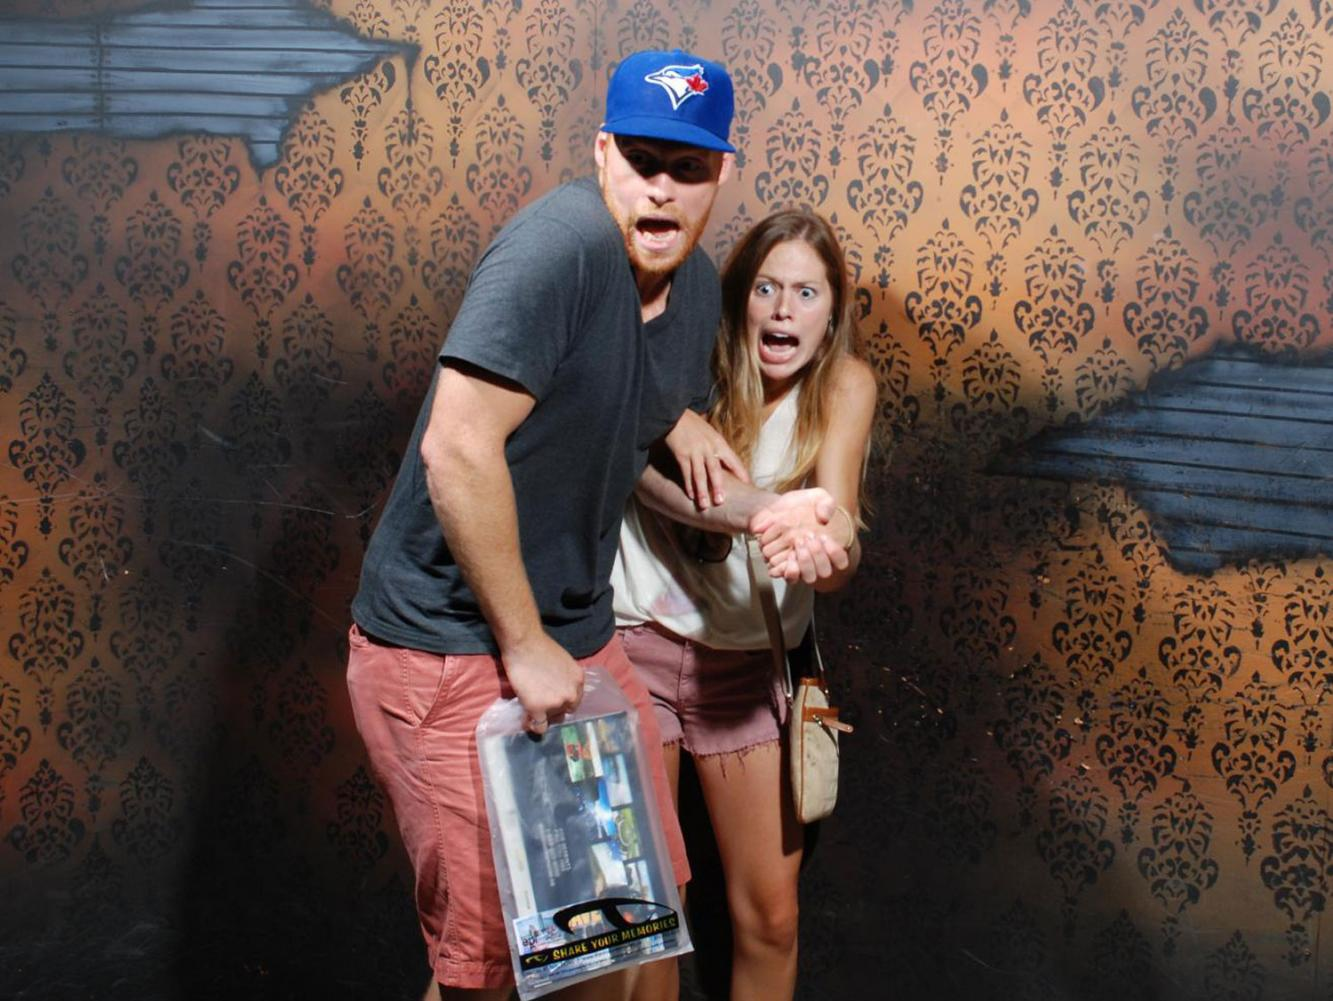 Nightmares Fear Factory Top 40 September 2013 pic0026